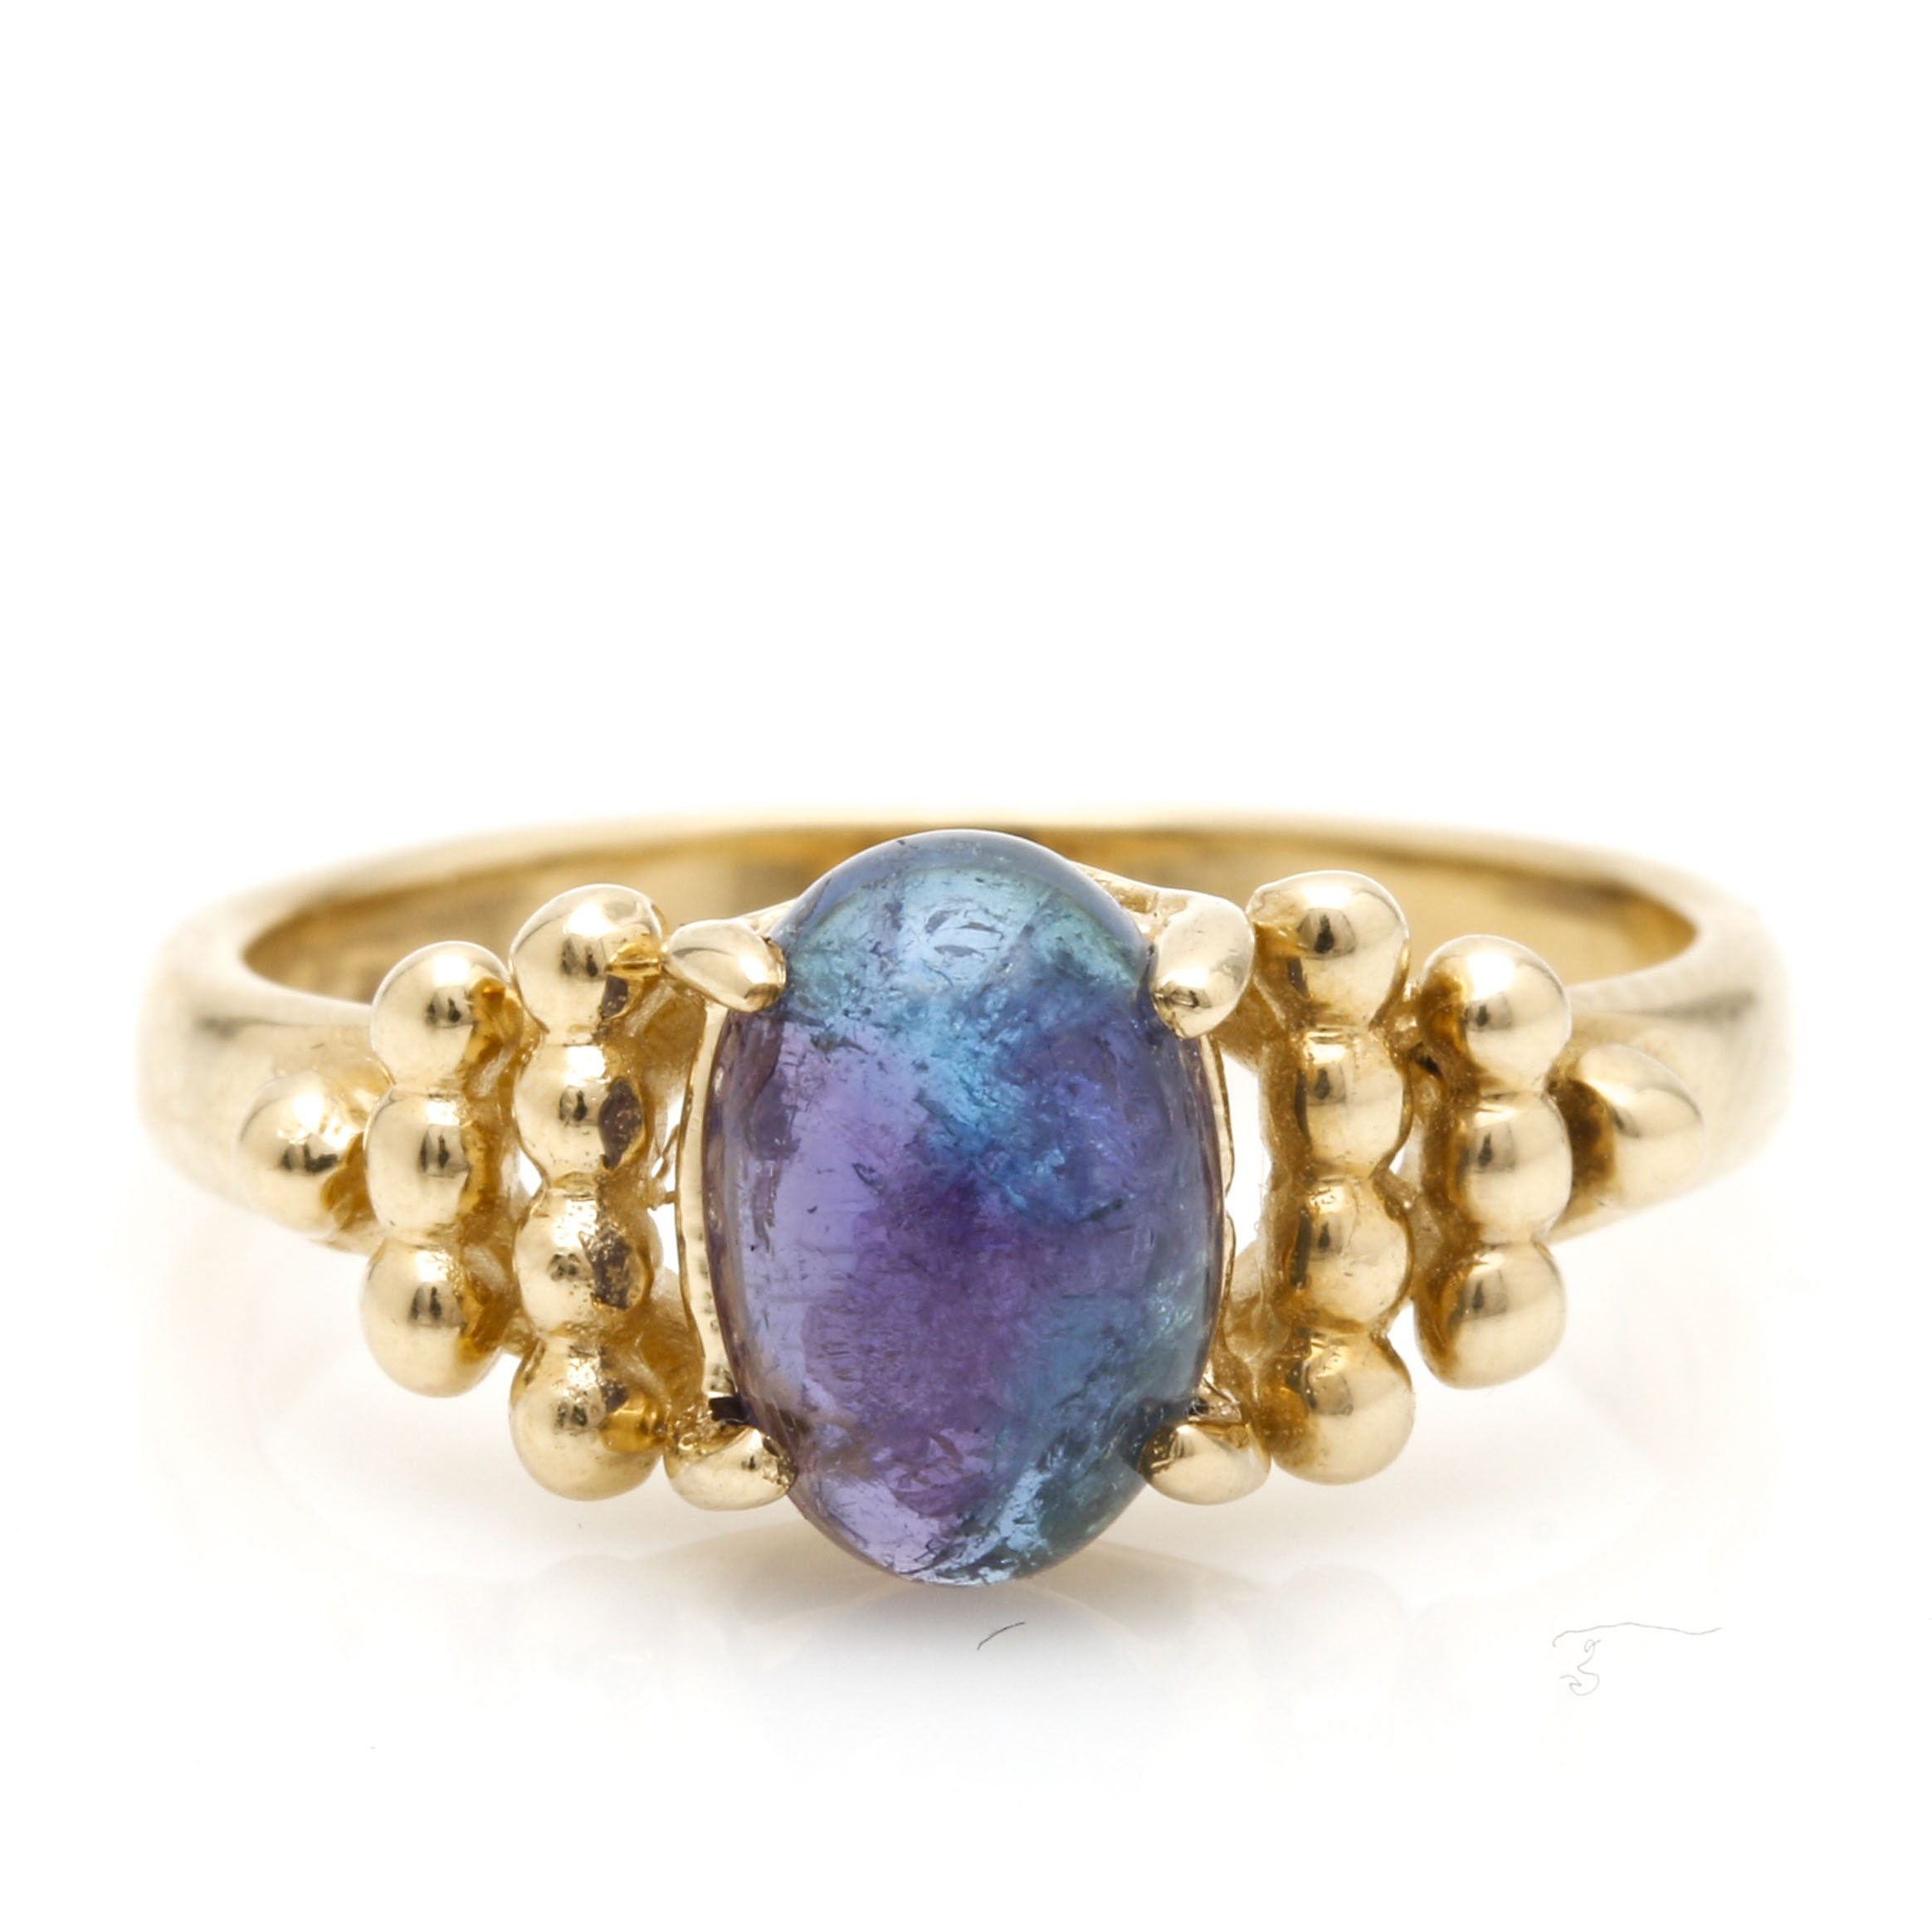 14K Yellow Gold 1.42 CT Parti-Colored Tourmaline Ring